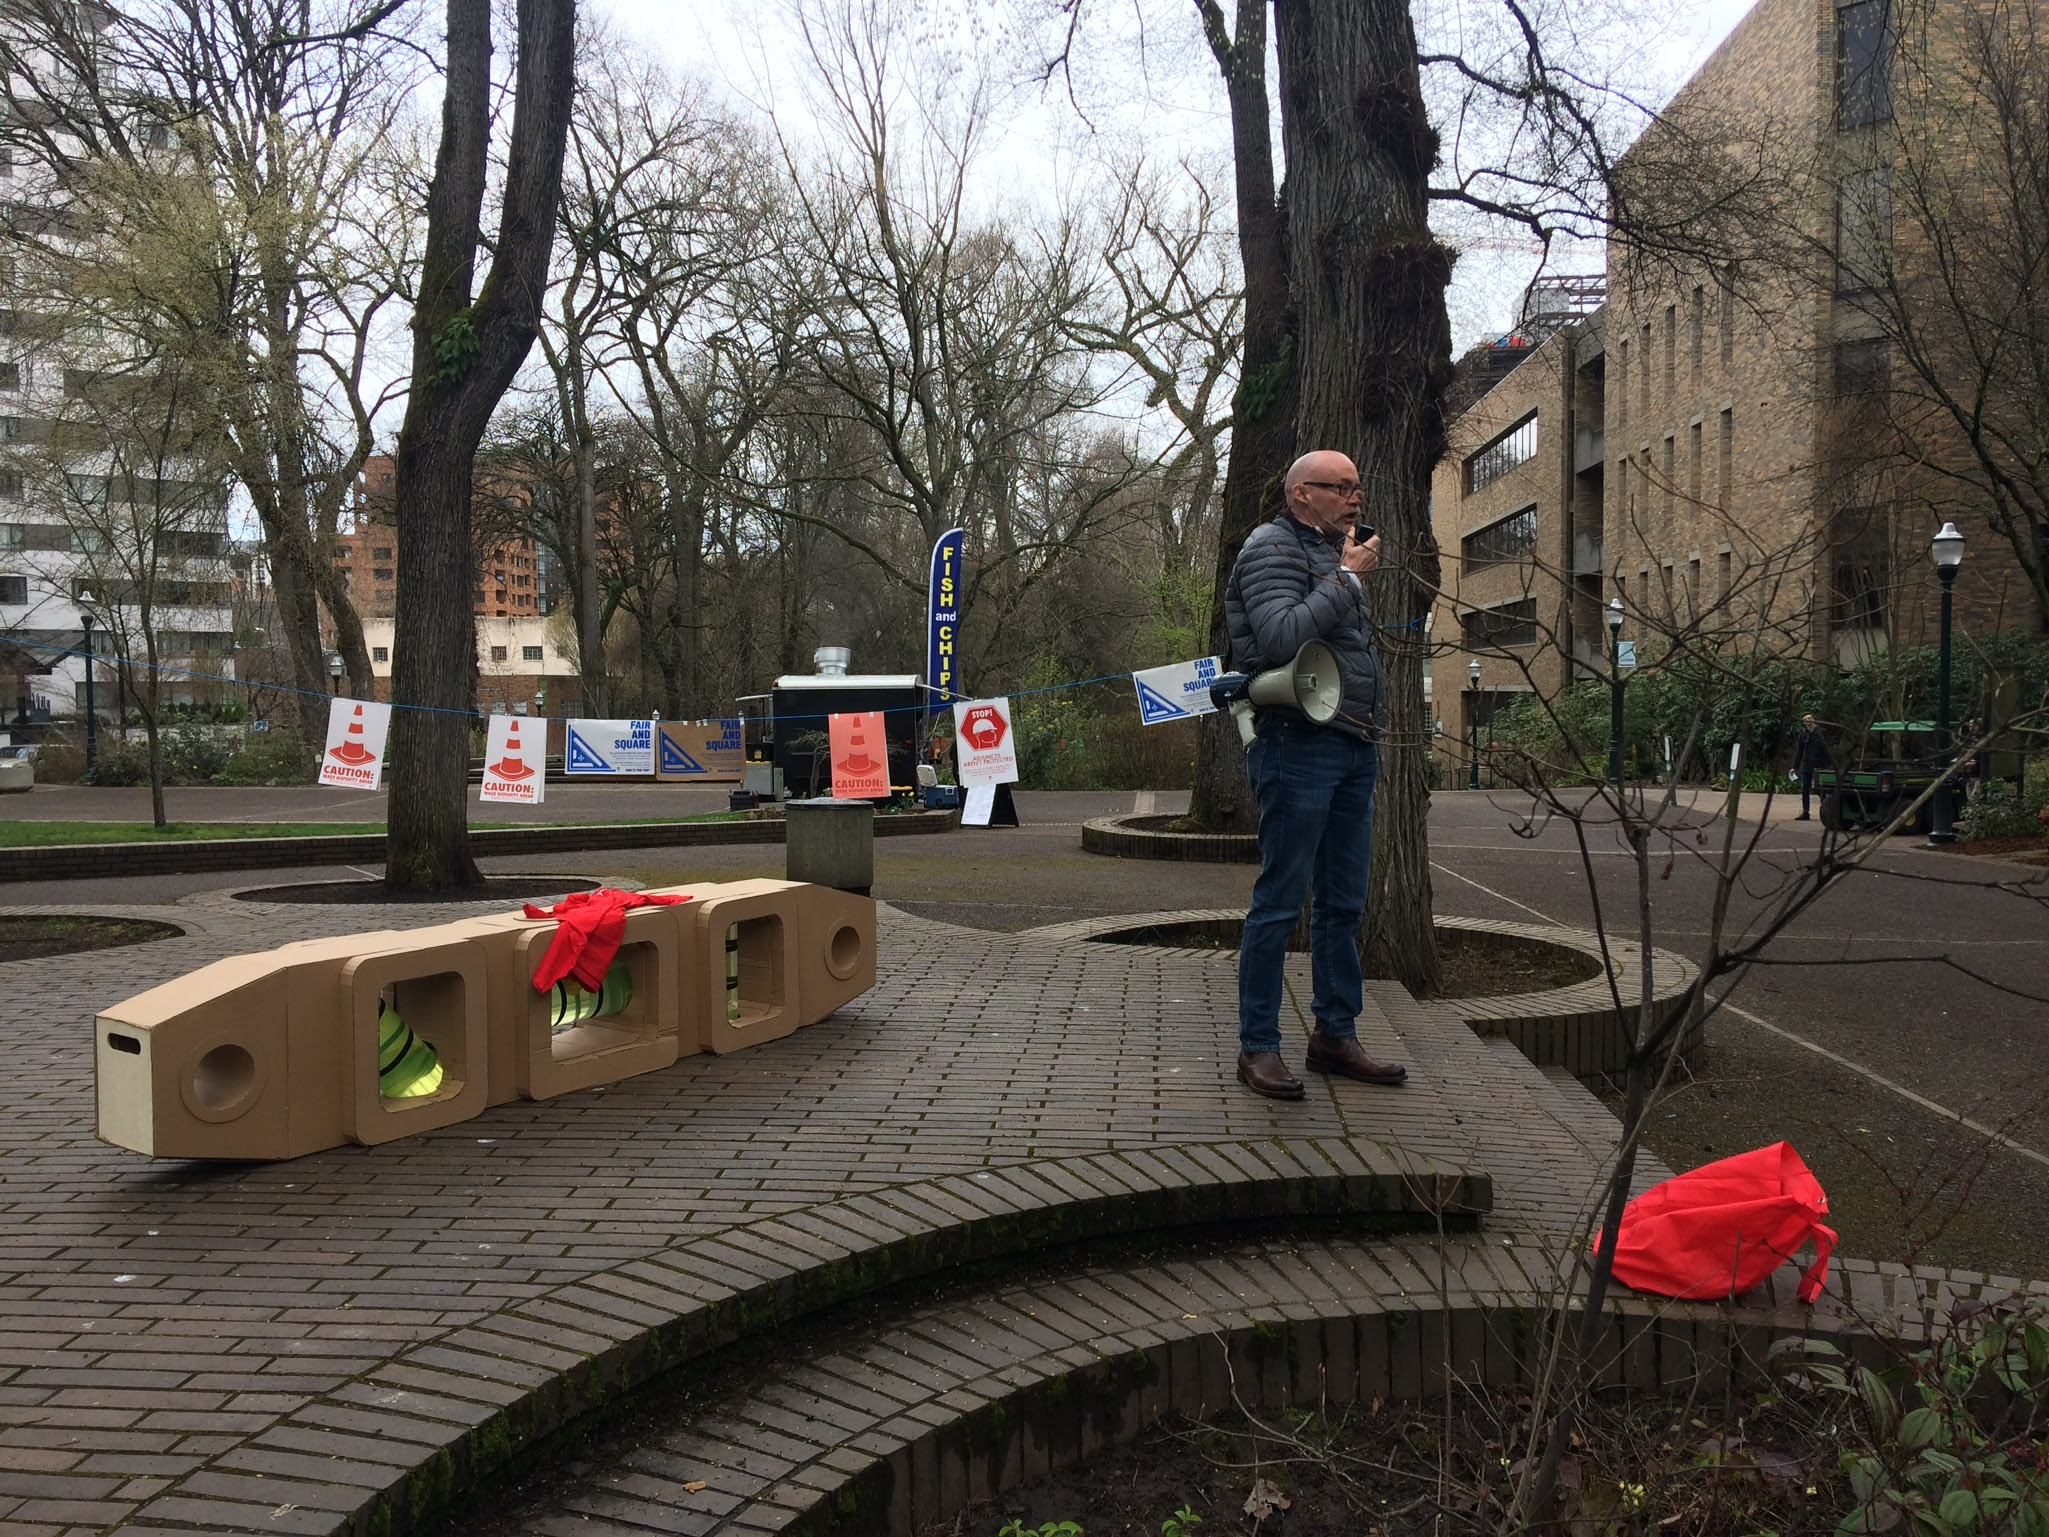 Jose Padin of AAUP said the President talked a good talk when interviewing for the job and now it's time to see if he walks the walk in support of his adjunct faculty.